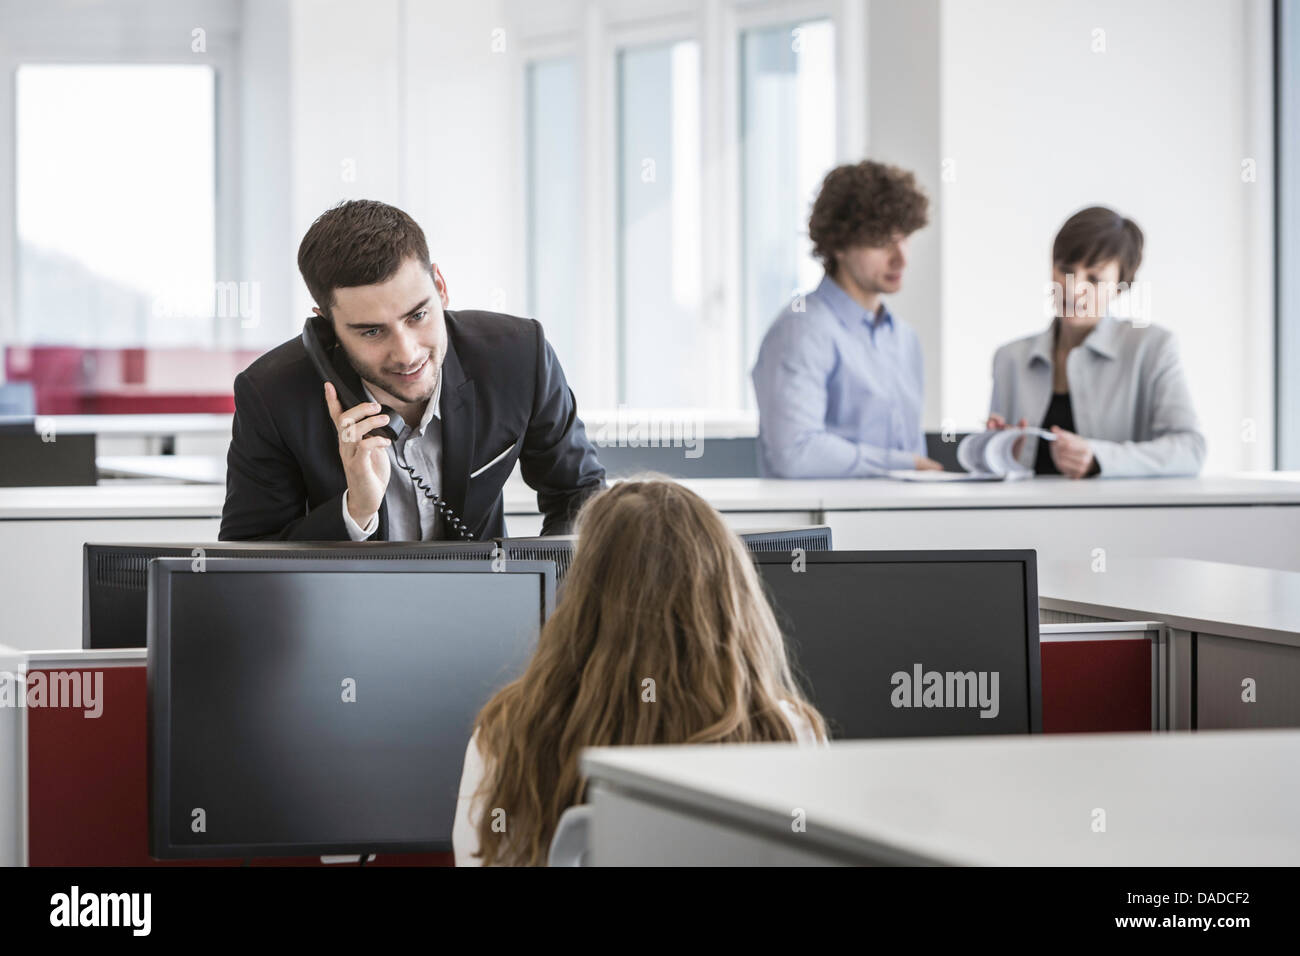 Businesspeople working in office - Stock Image